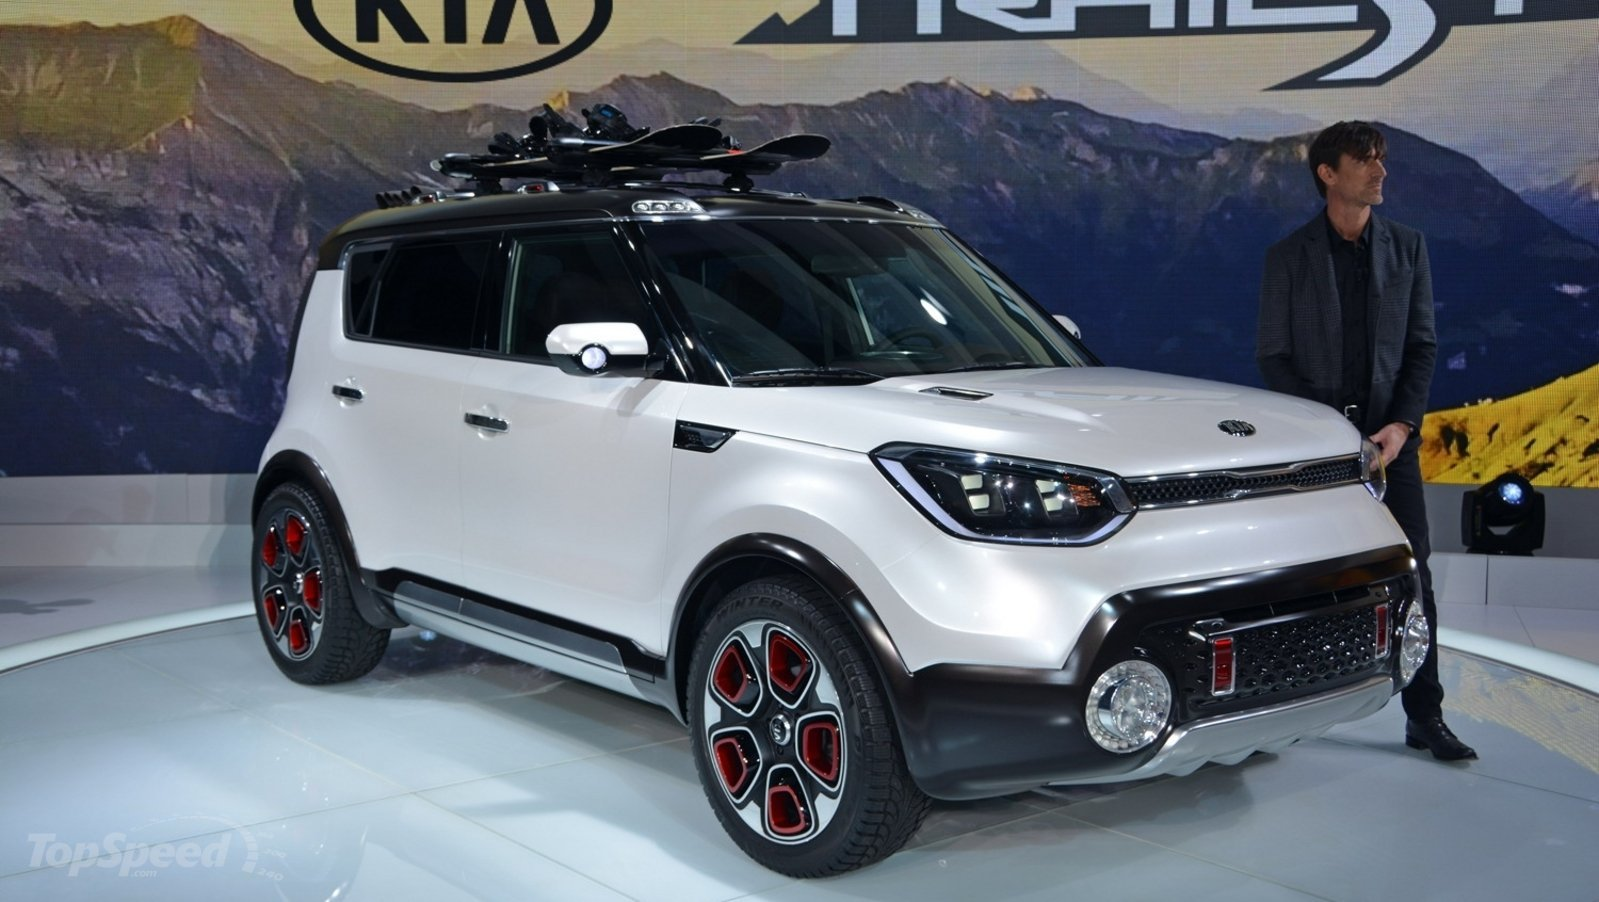 2015 kia trail 39 ster e awd concept review top speed. Black Bedroom Furniture Sets. Home Design Ideas